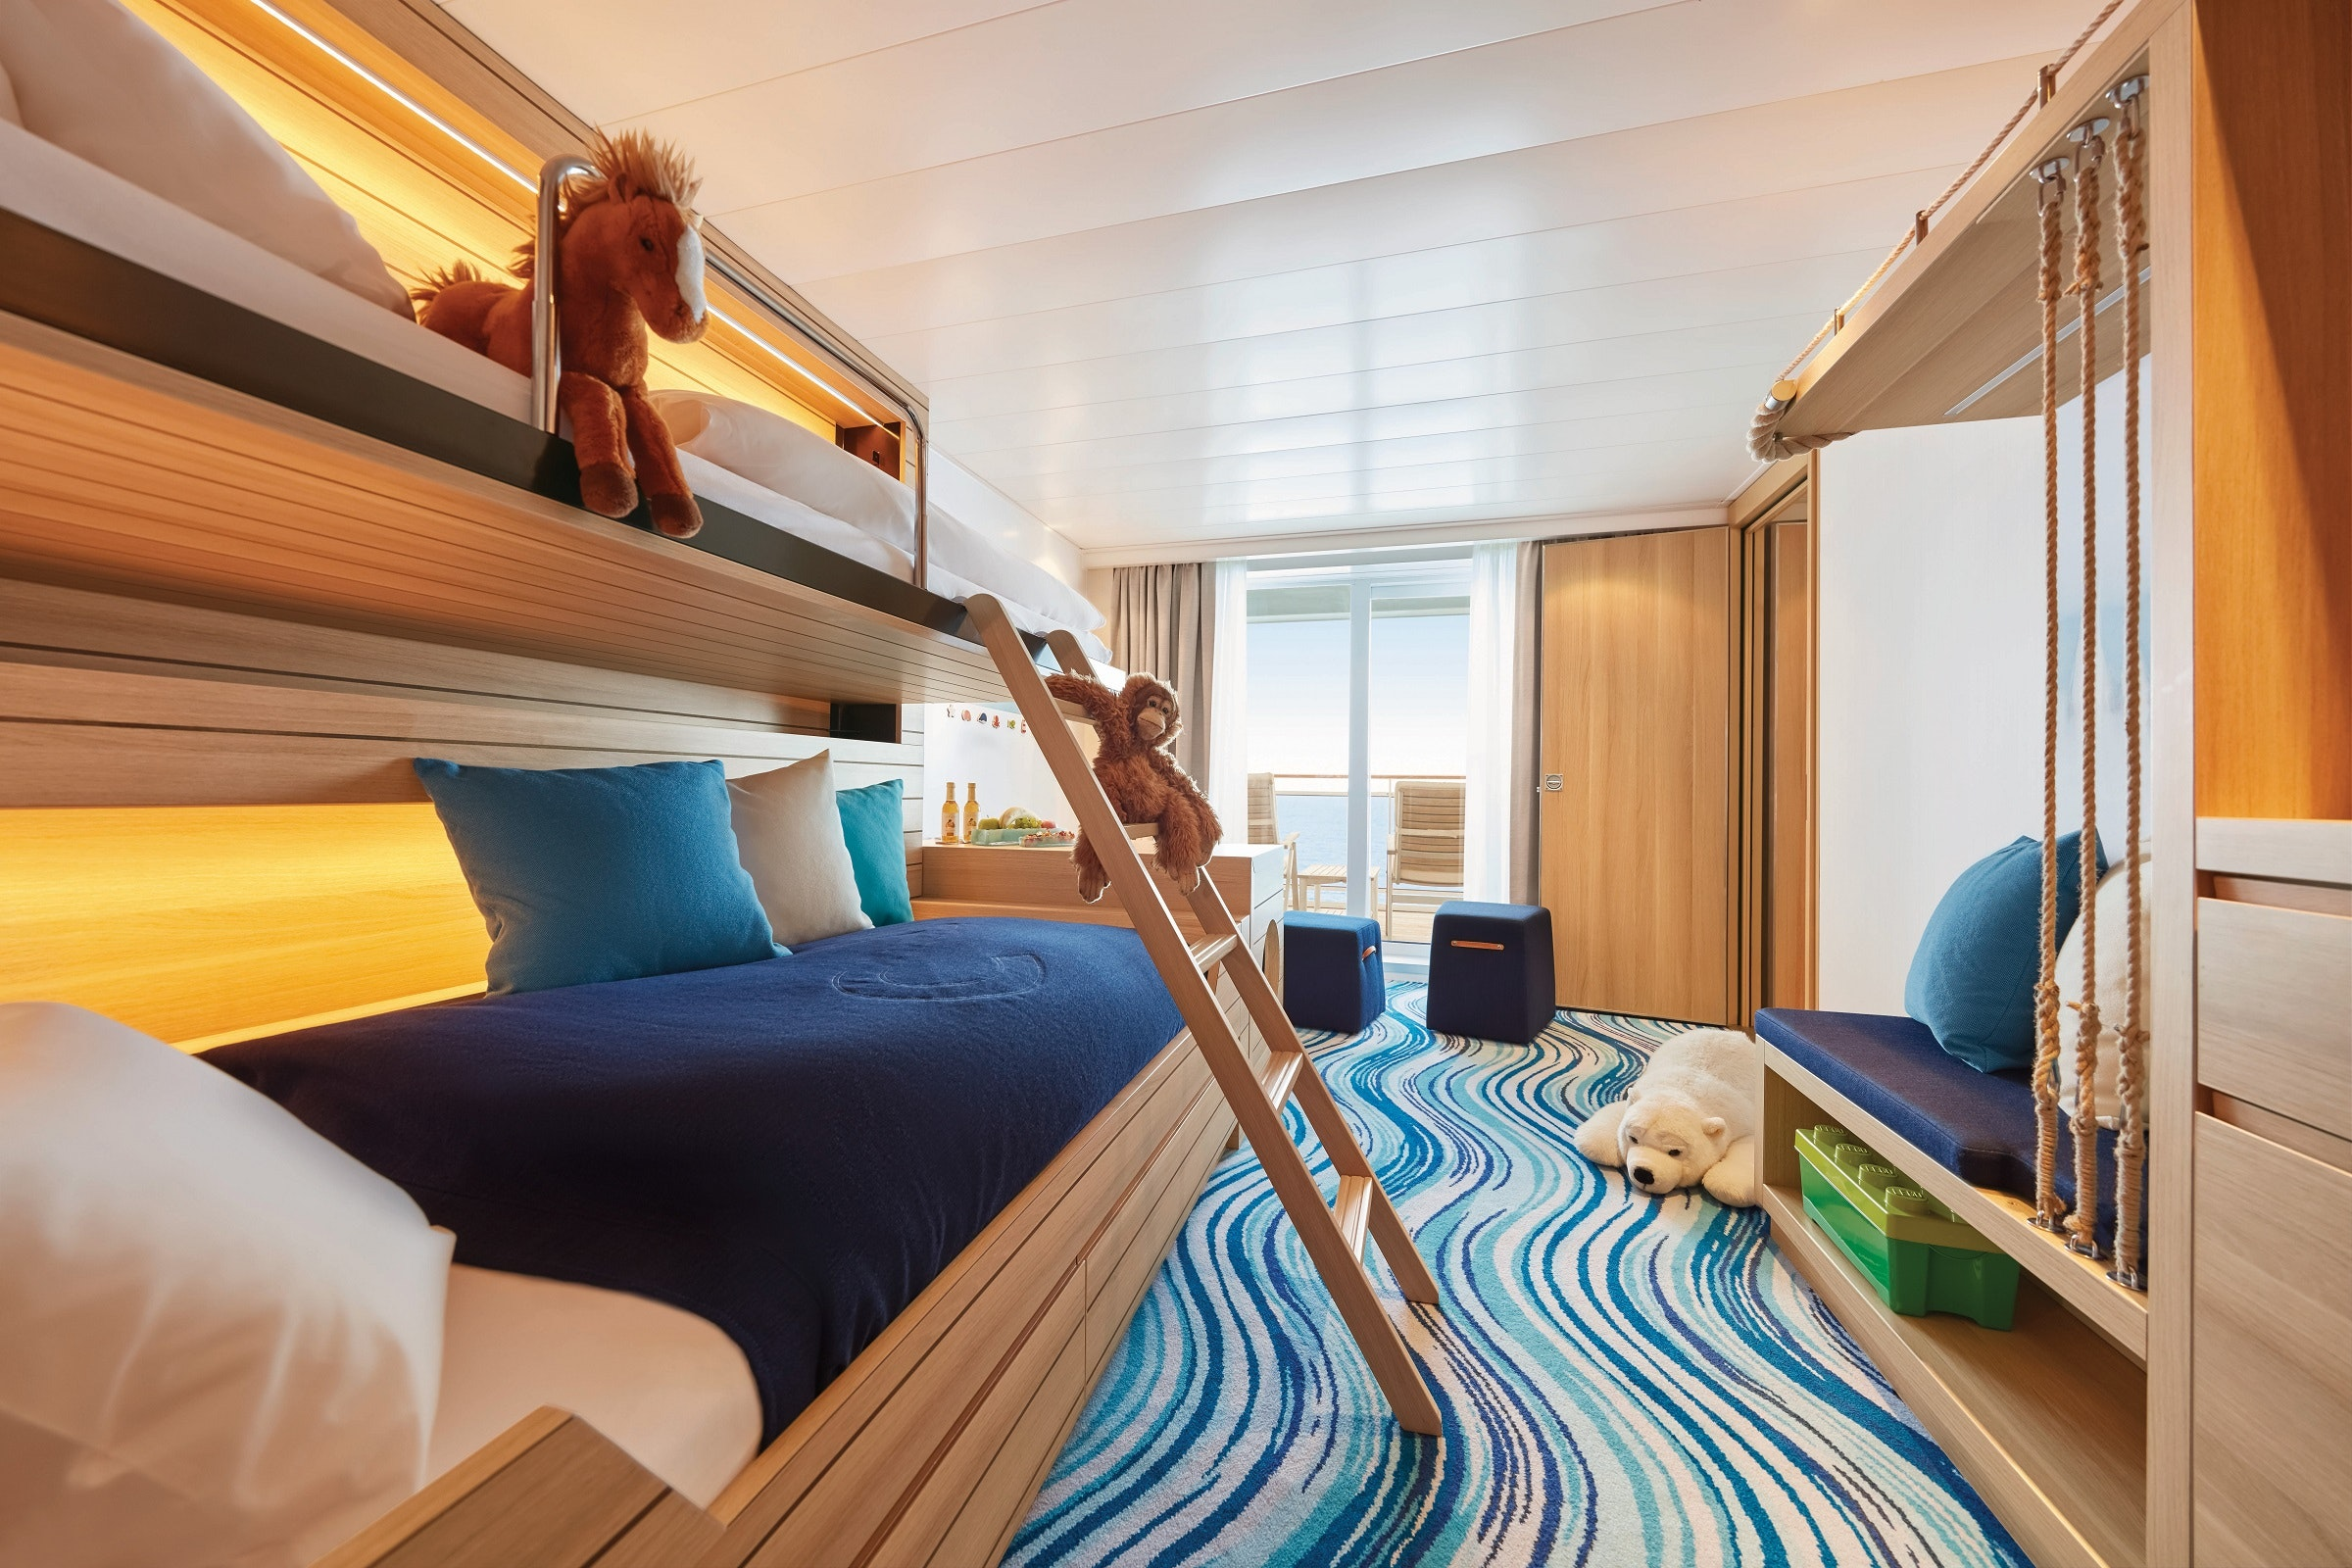 A family cabin on Hapag-Lloyd Cruises has plenty of space for little ones and their parents.